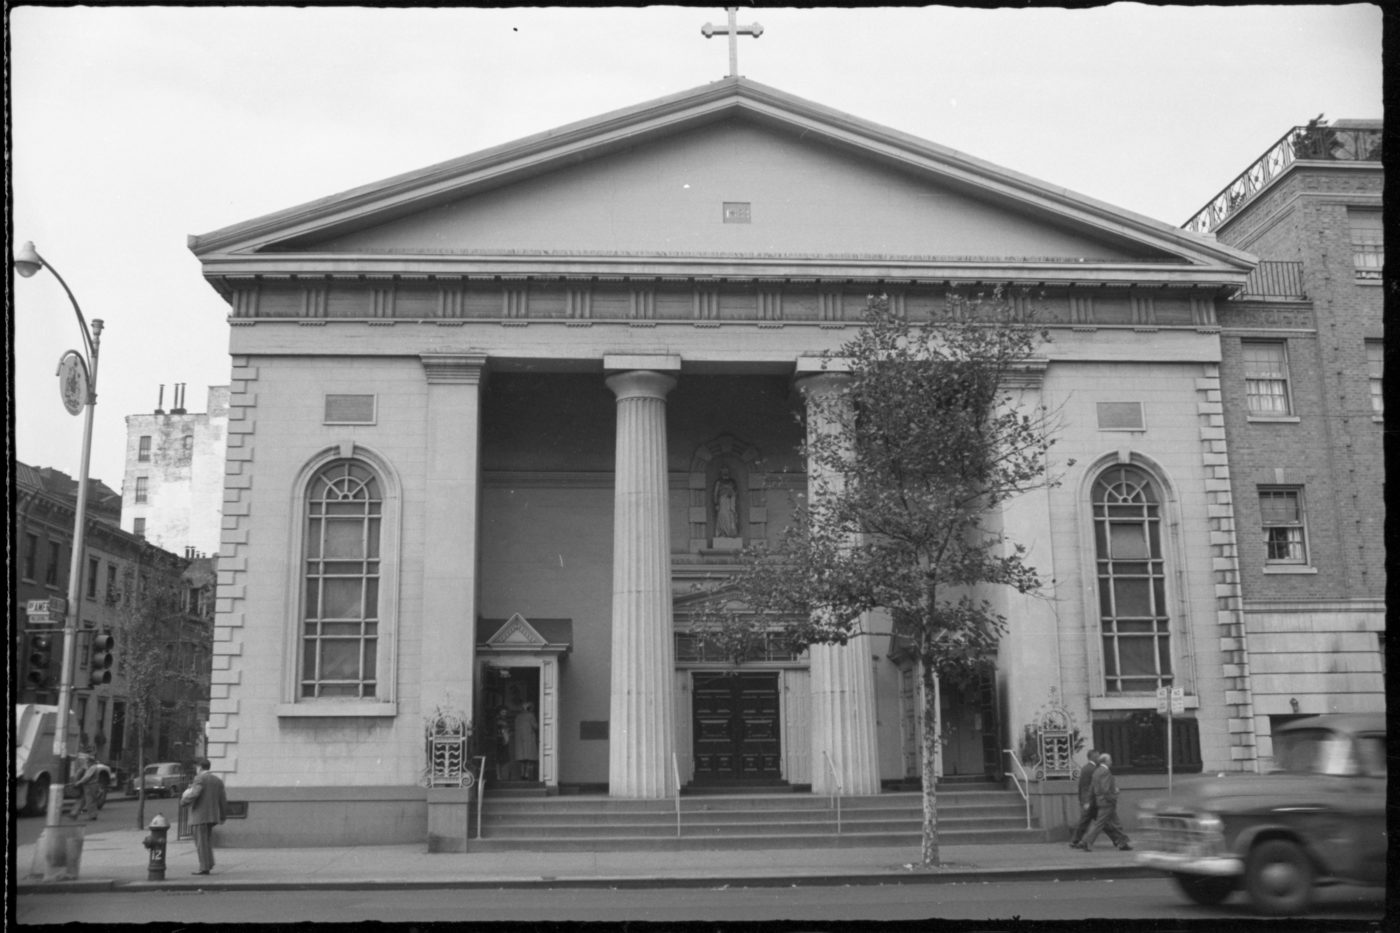 St. Joseph's Church, from the 1969 Greenwich Village Historic District report